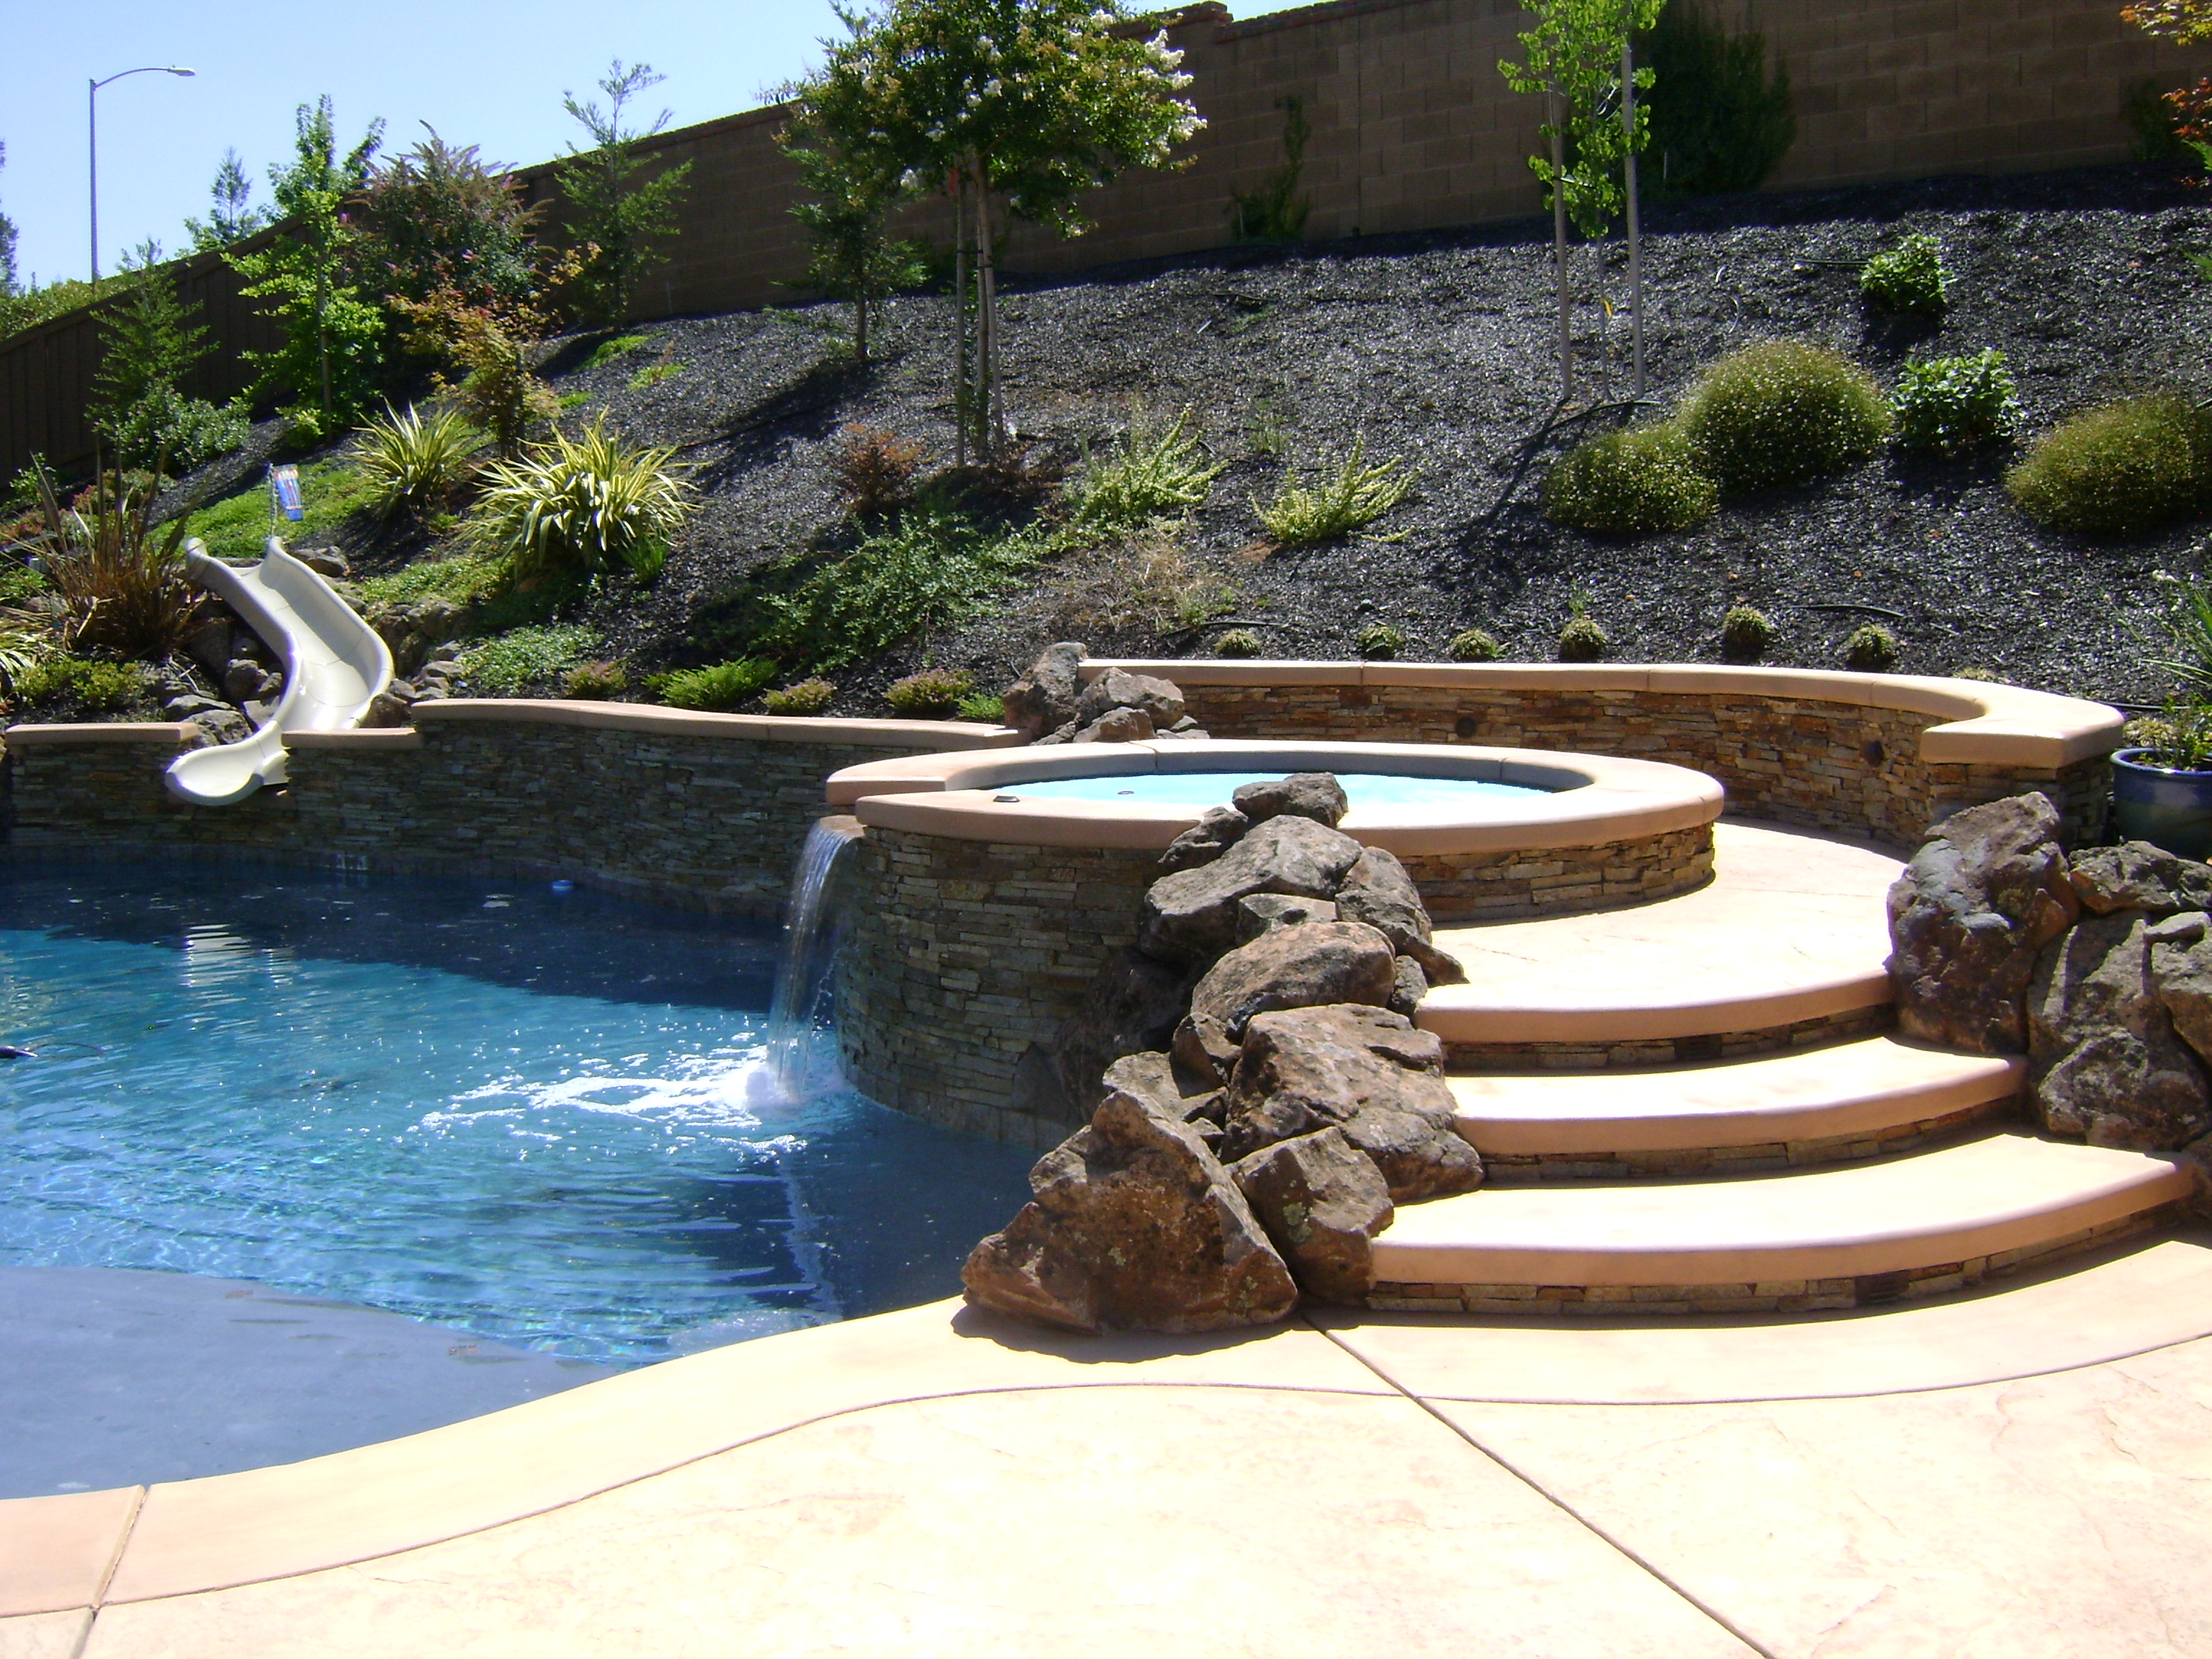 Pool Designs And Landscaping swimming pool/spa design